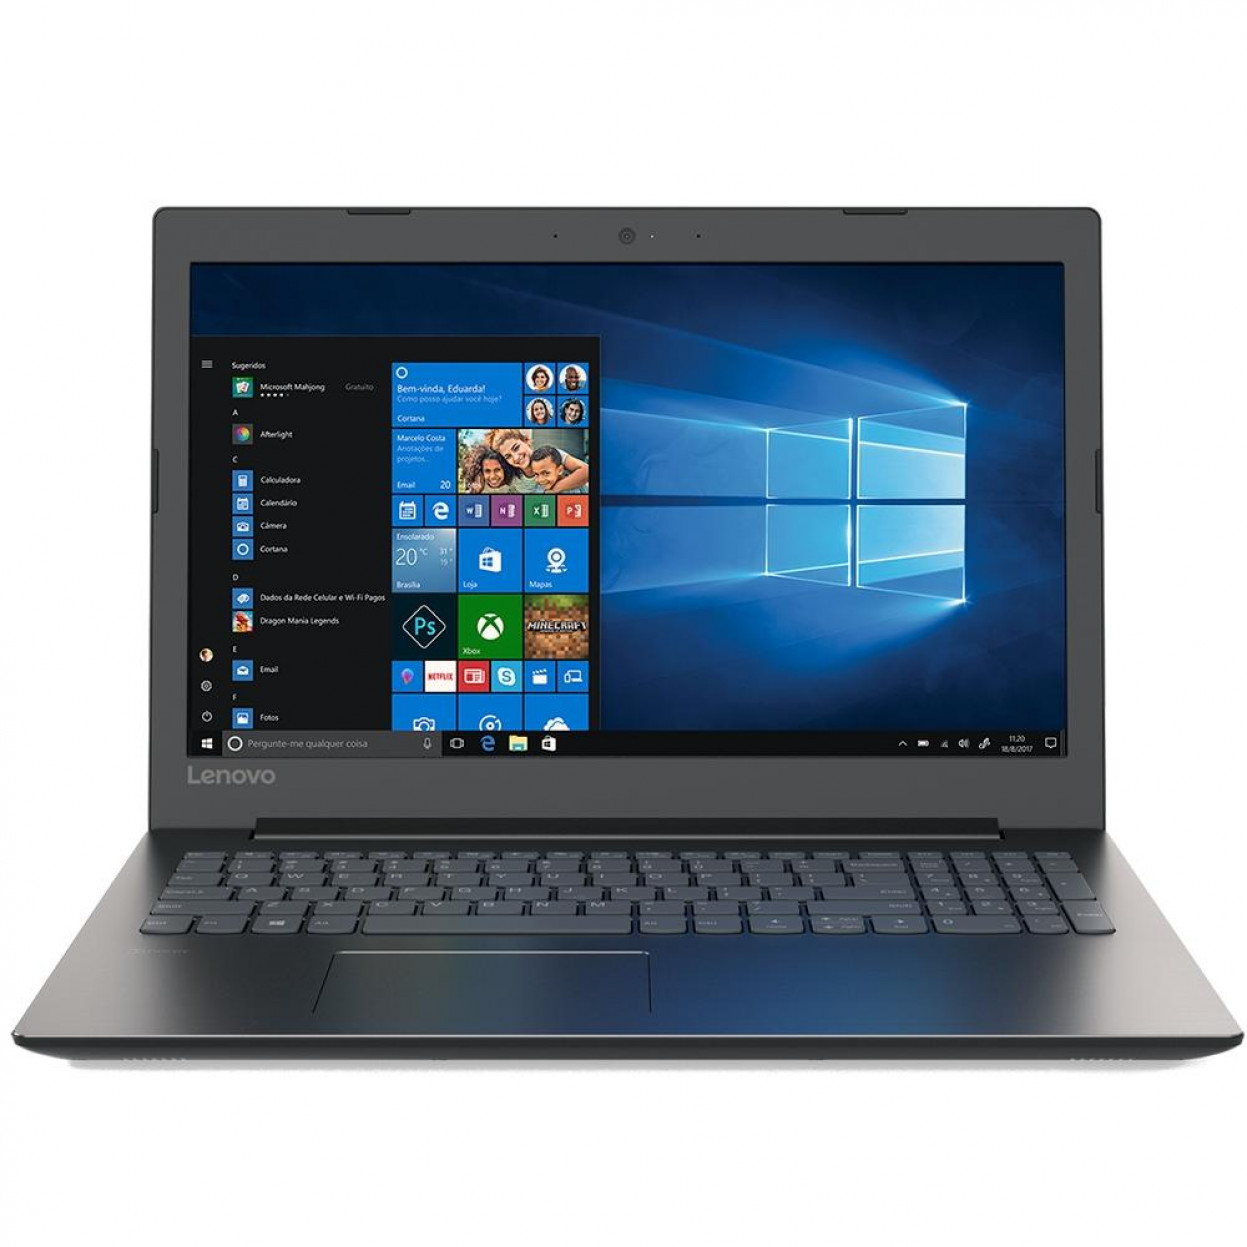 Notebook Lenovo B330 Core I3 7020u Memoria 12gb Ssd 120gb Tela 15.6' Hd Windows 10 Home